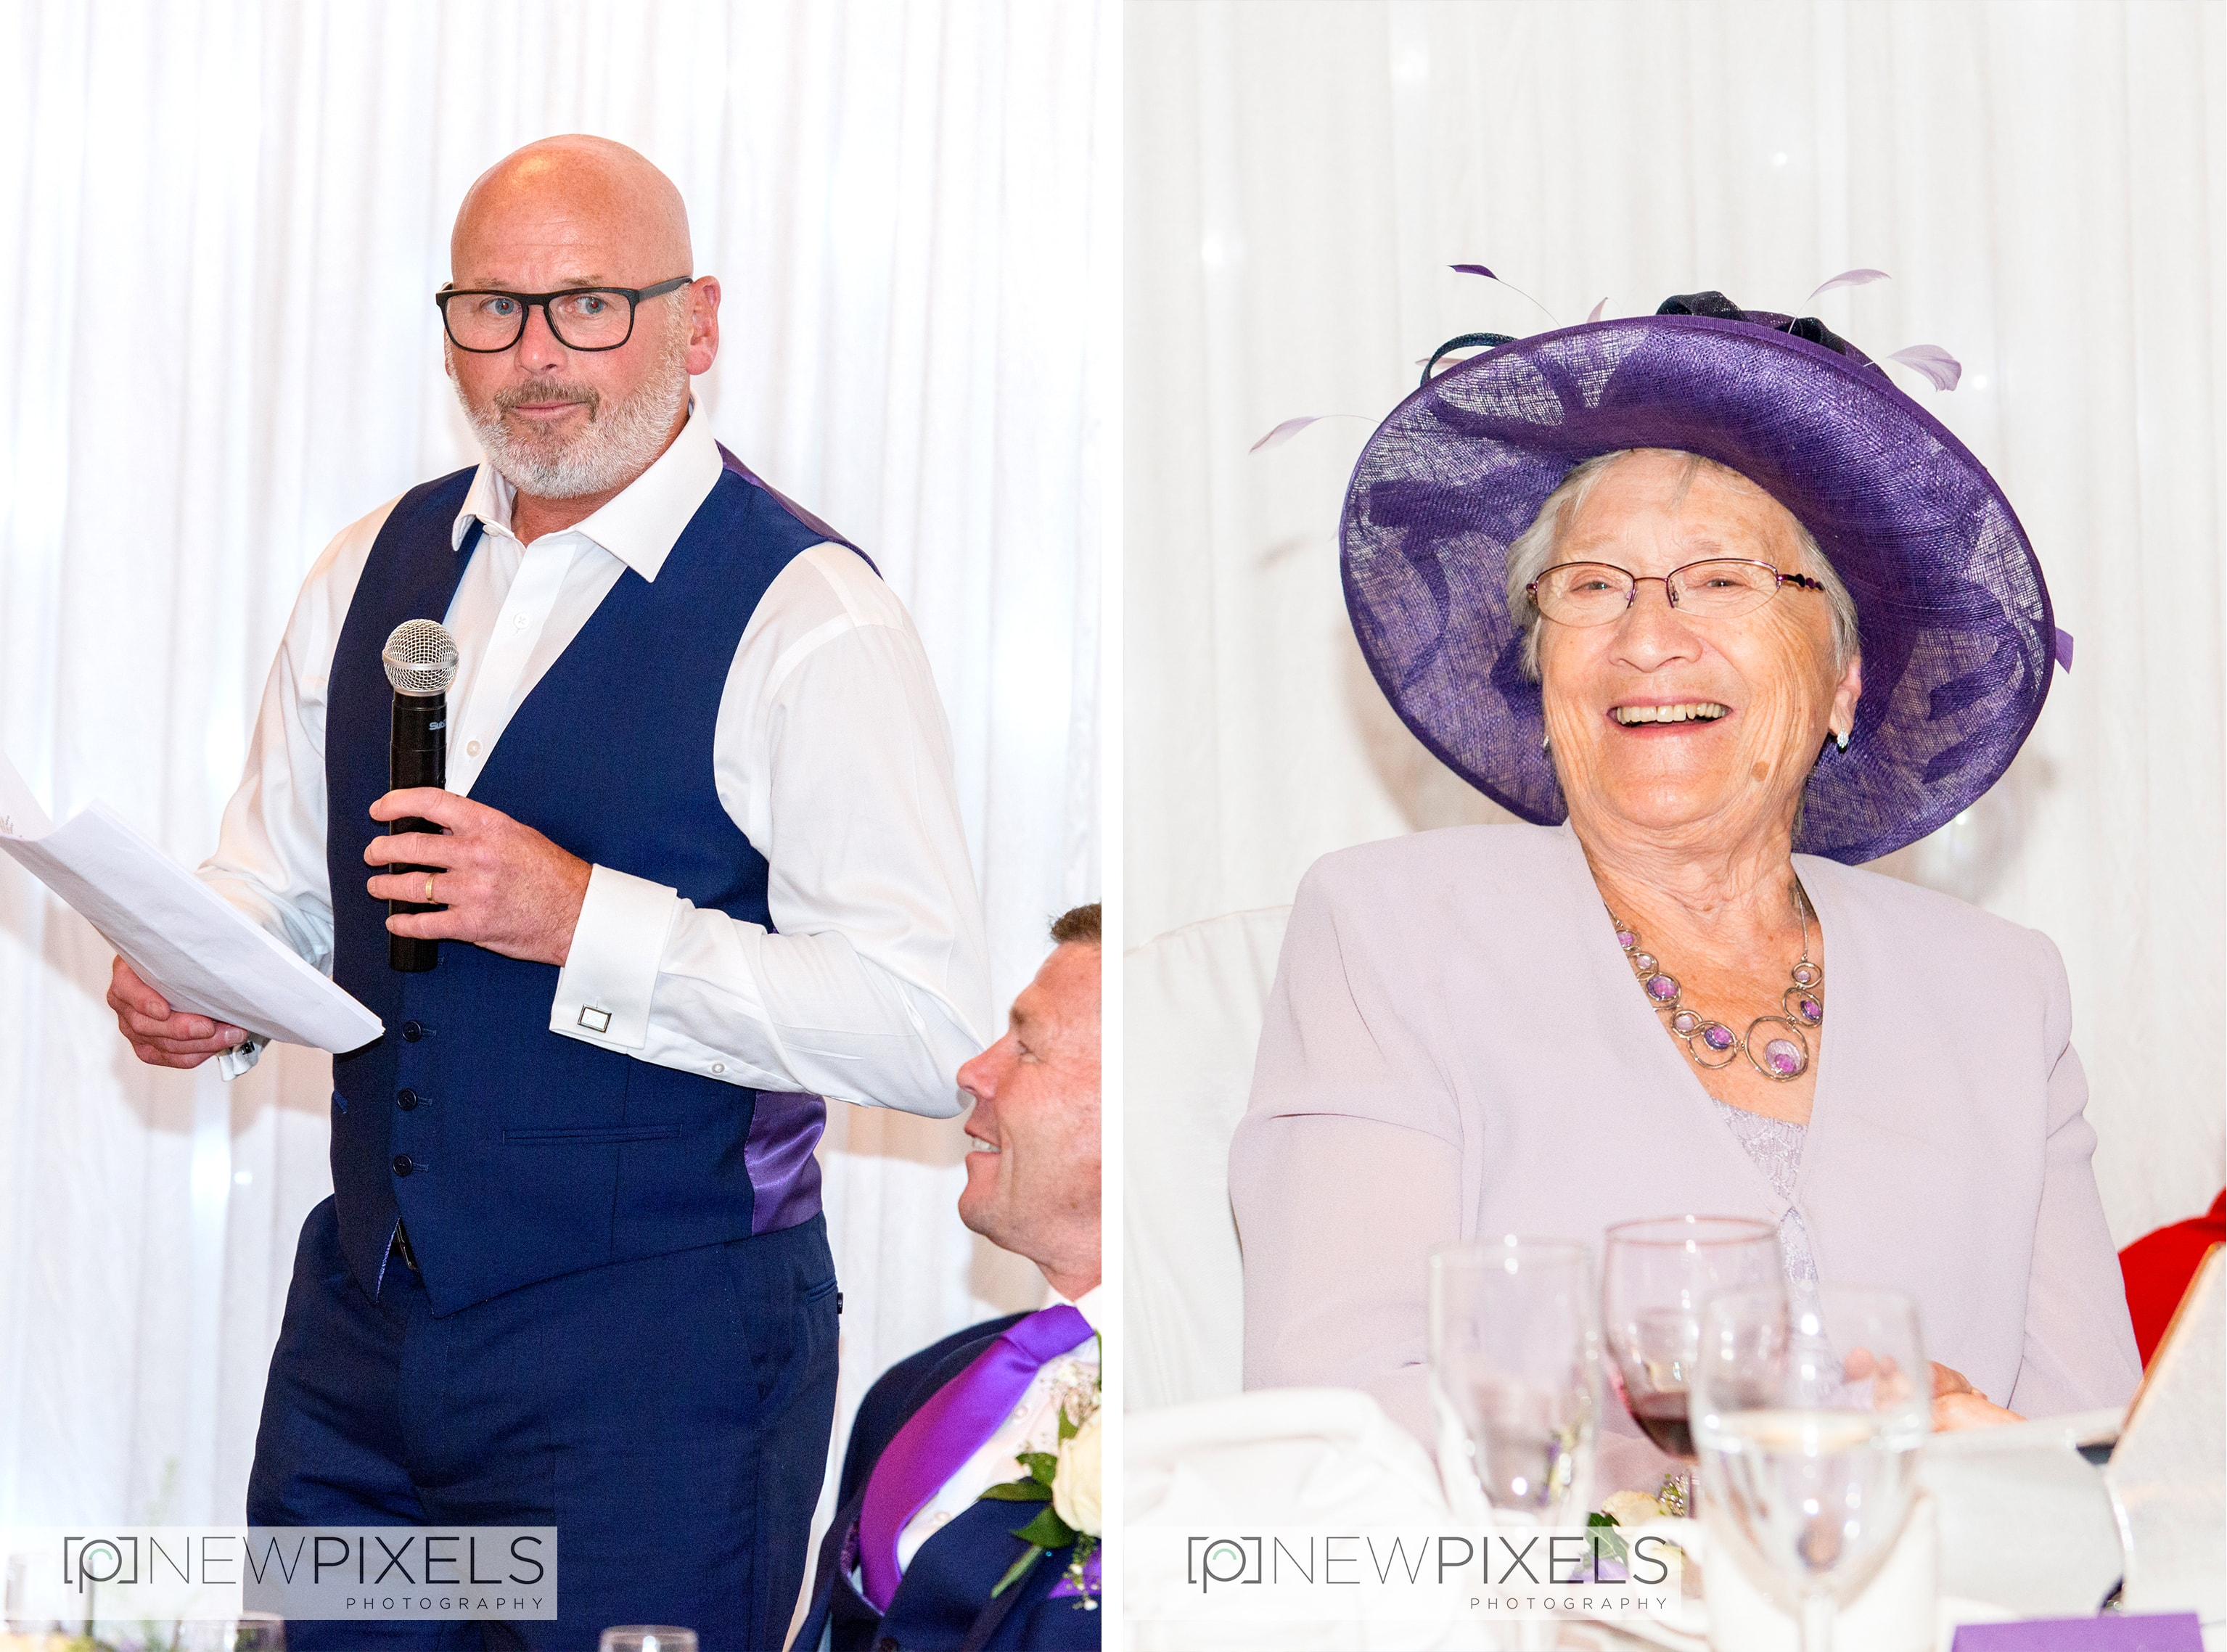 downhall wedding photographer9